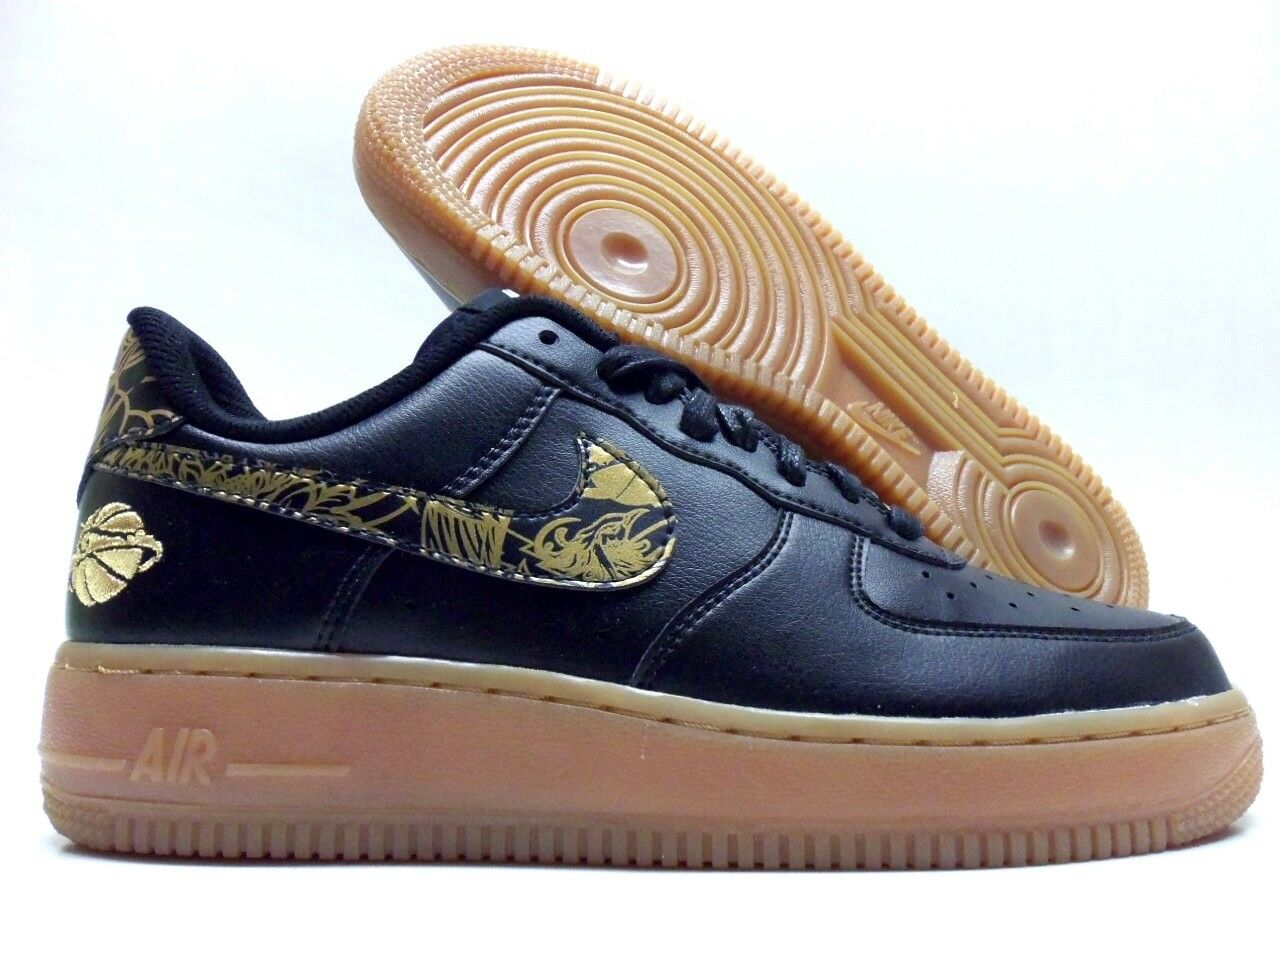 NIKE AIR FORCE 1 LOW ID BLACK METALLIC gold-GUM SIZE WOMEN'S 8 RARE [919730-992]